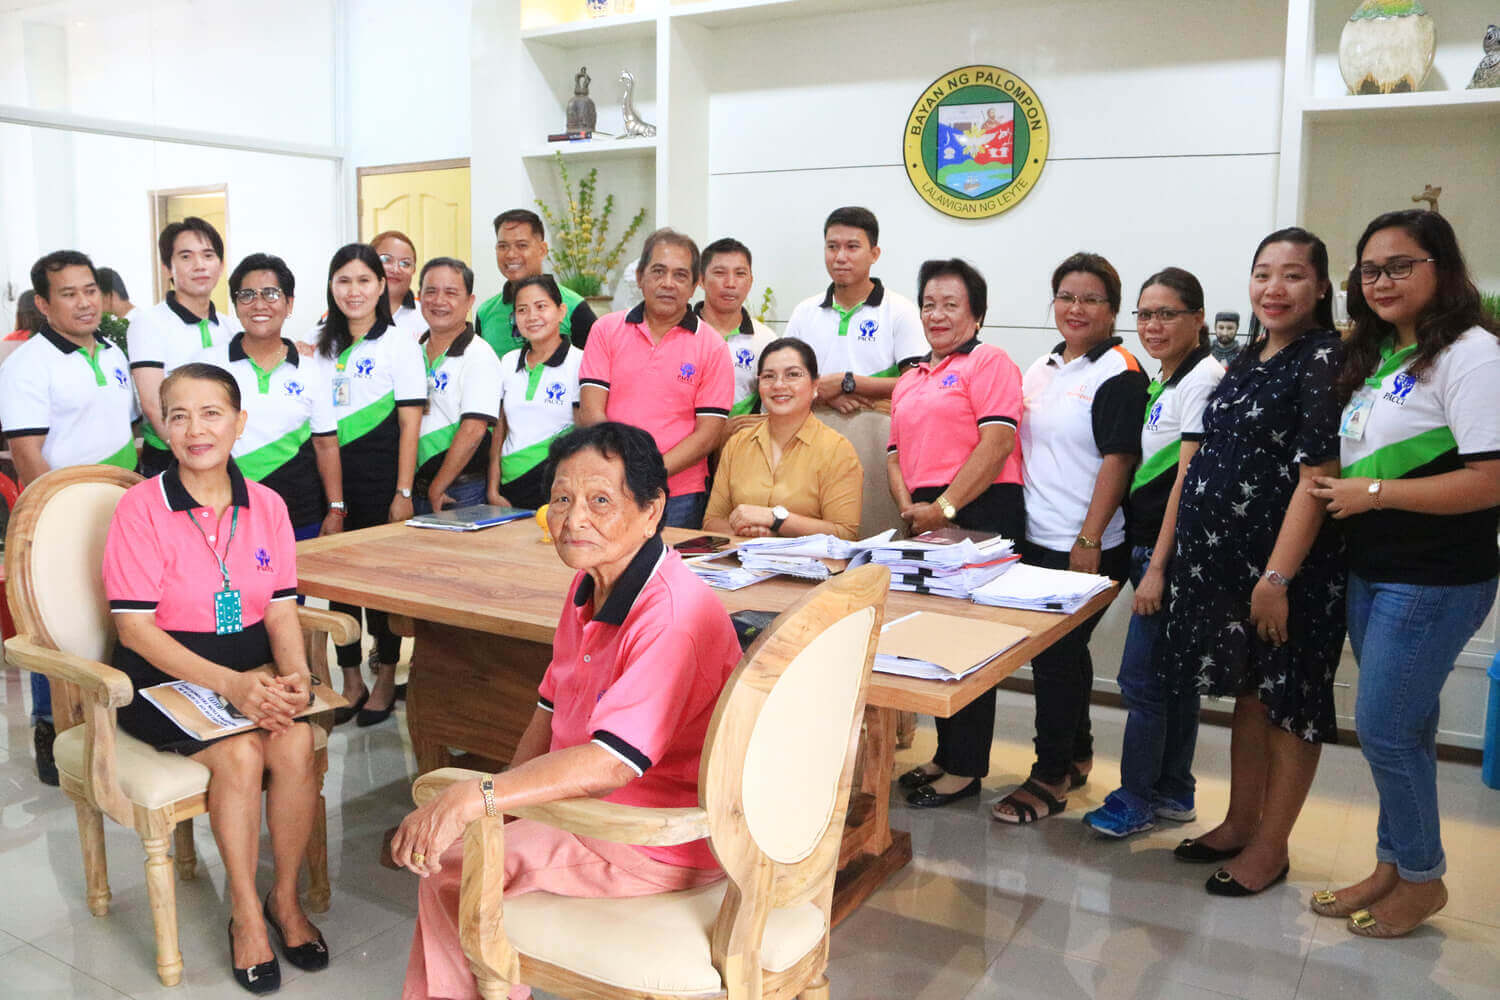 The PACCI CEO Arcelene F. Sorgillo, Officers and Staff Paid a Courtesy Call to Our New Municipal Mayor Hon. Myra Georgina L. Arevalo, MD. in her Office